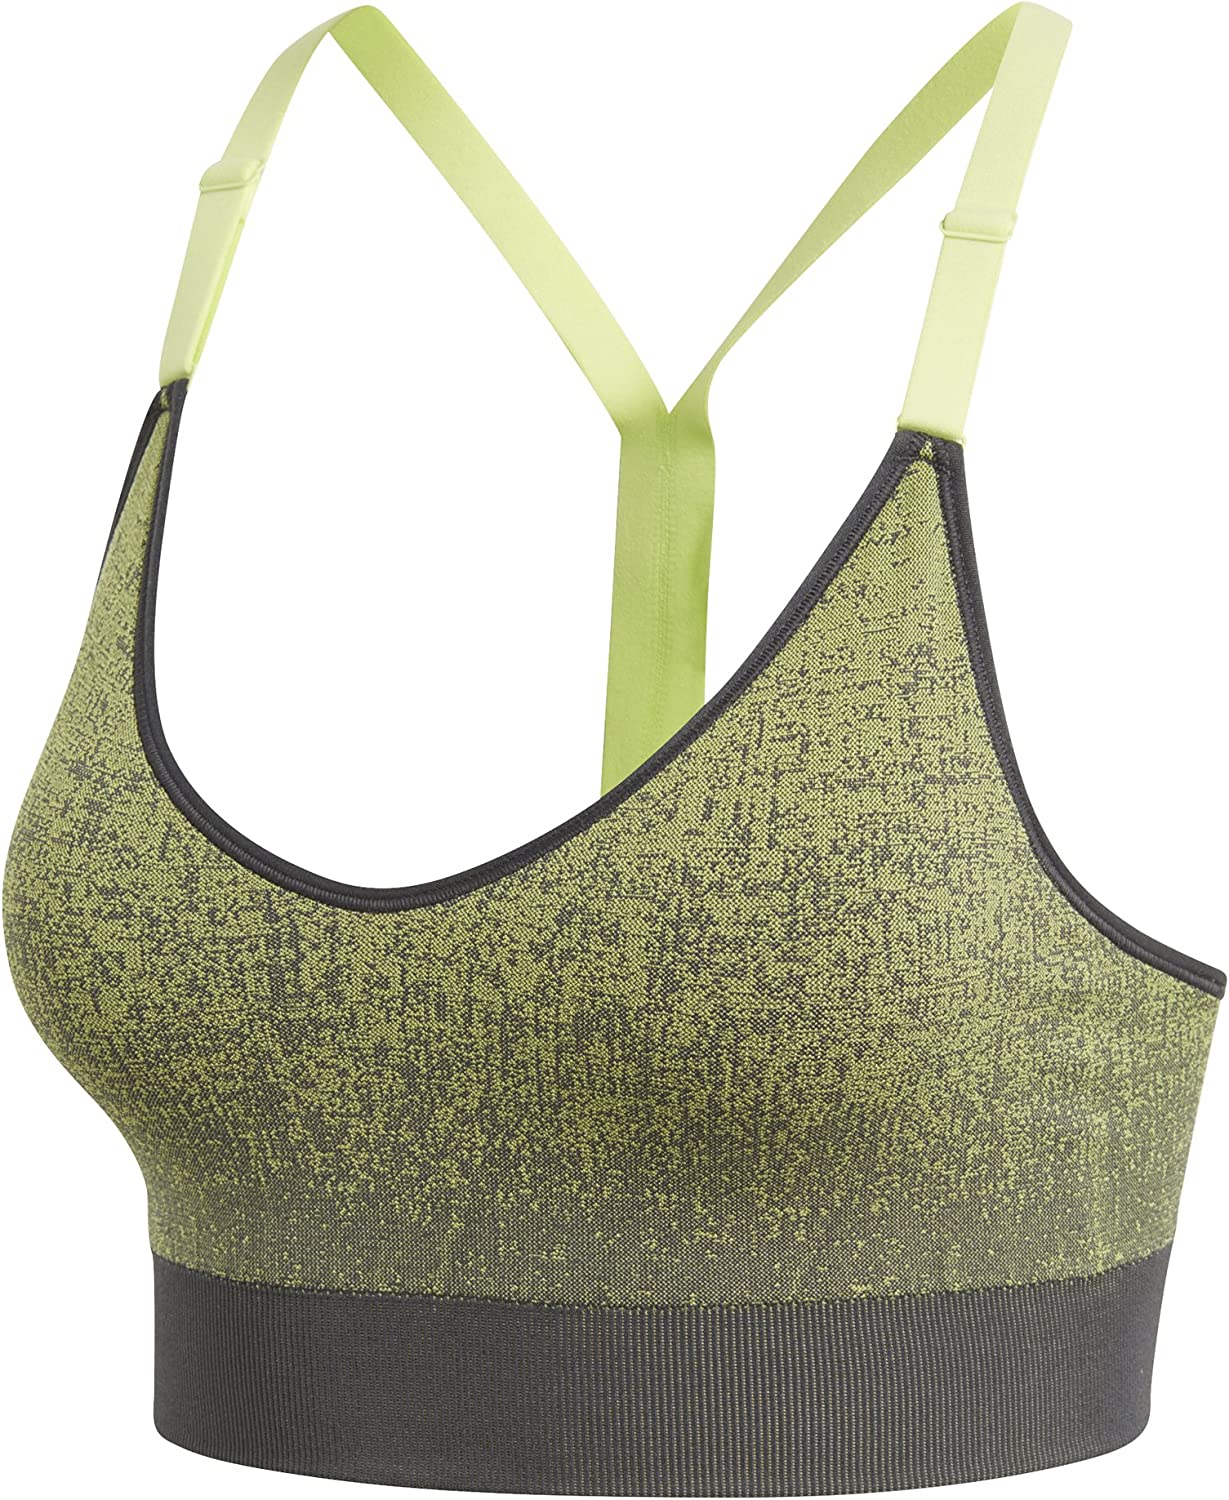 TALLA M. adidas All Me SML Htr Top, Mujer